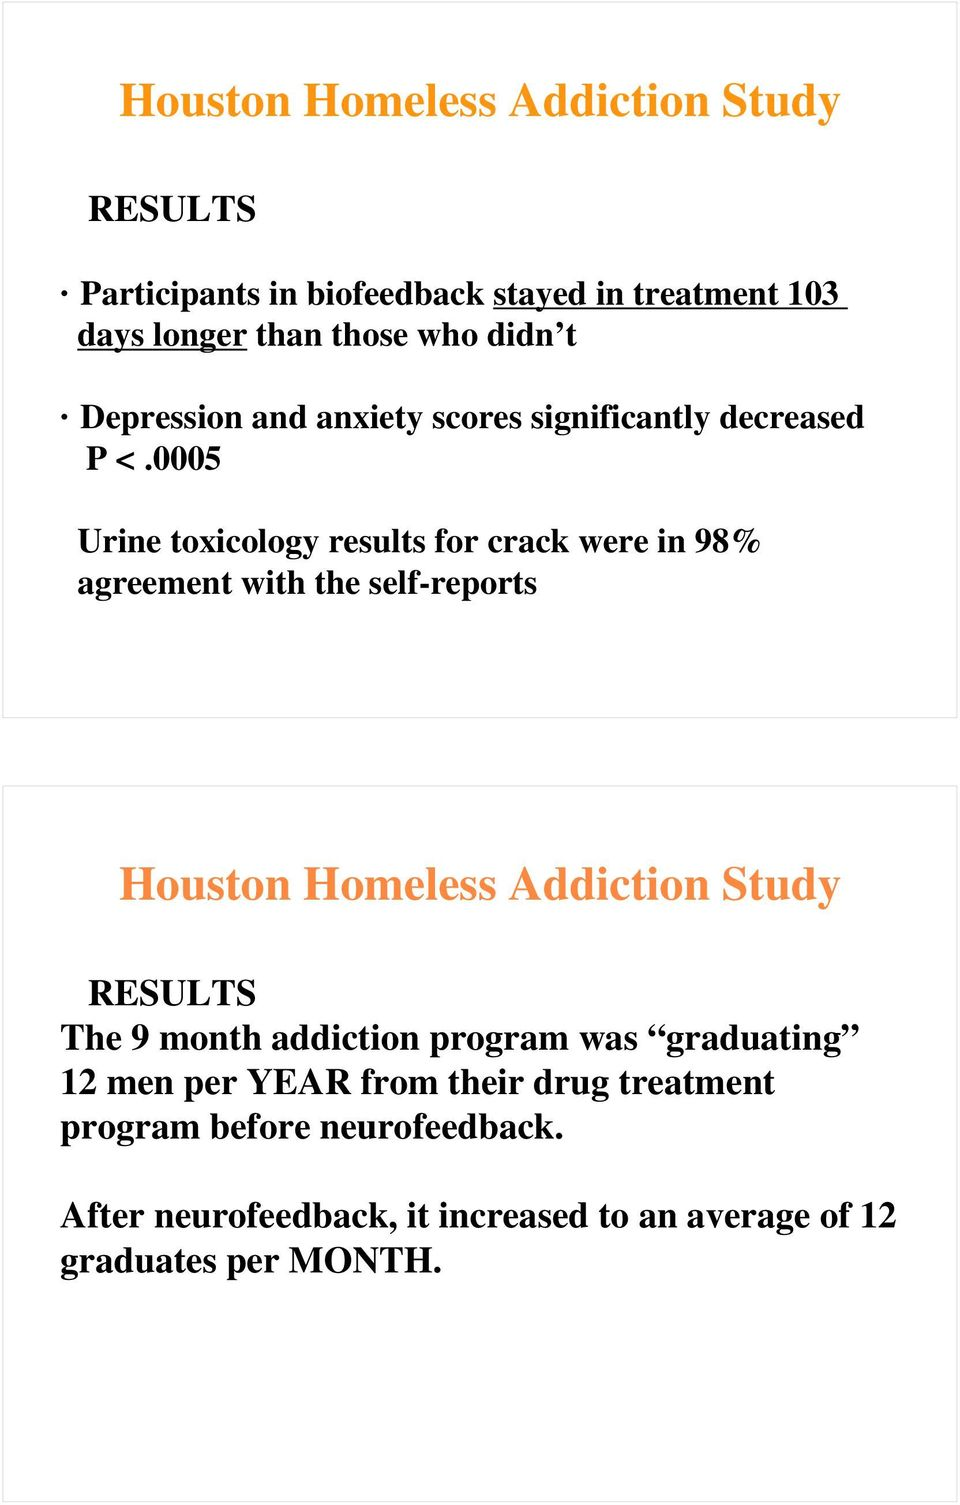 0005 Urine toxicology results for crack were in 98% agreement with the self-reports Houston Homeless Addiction Study RESULTS